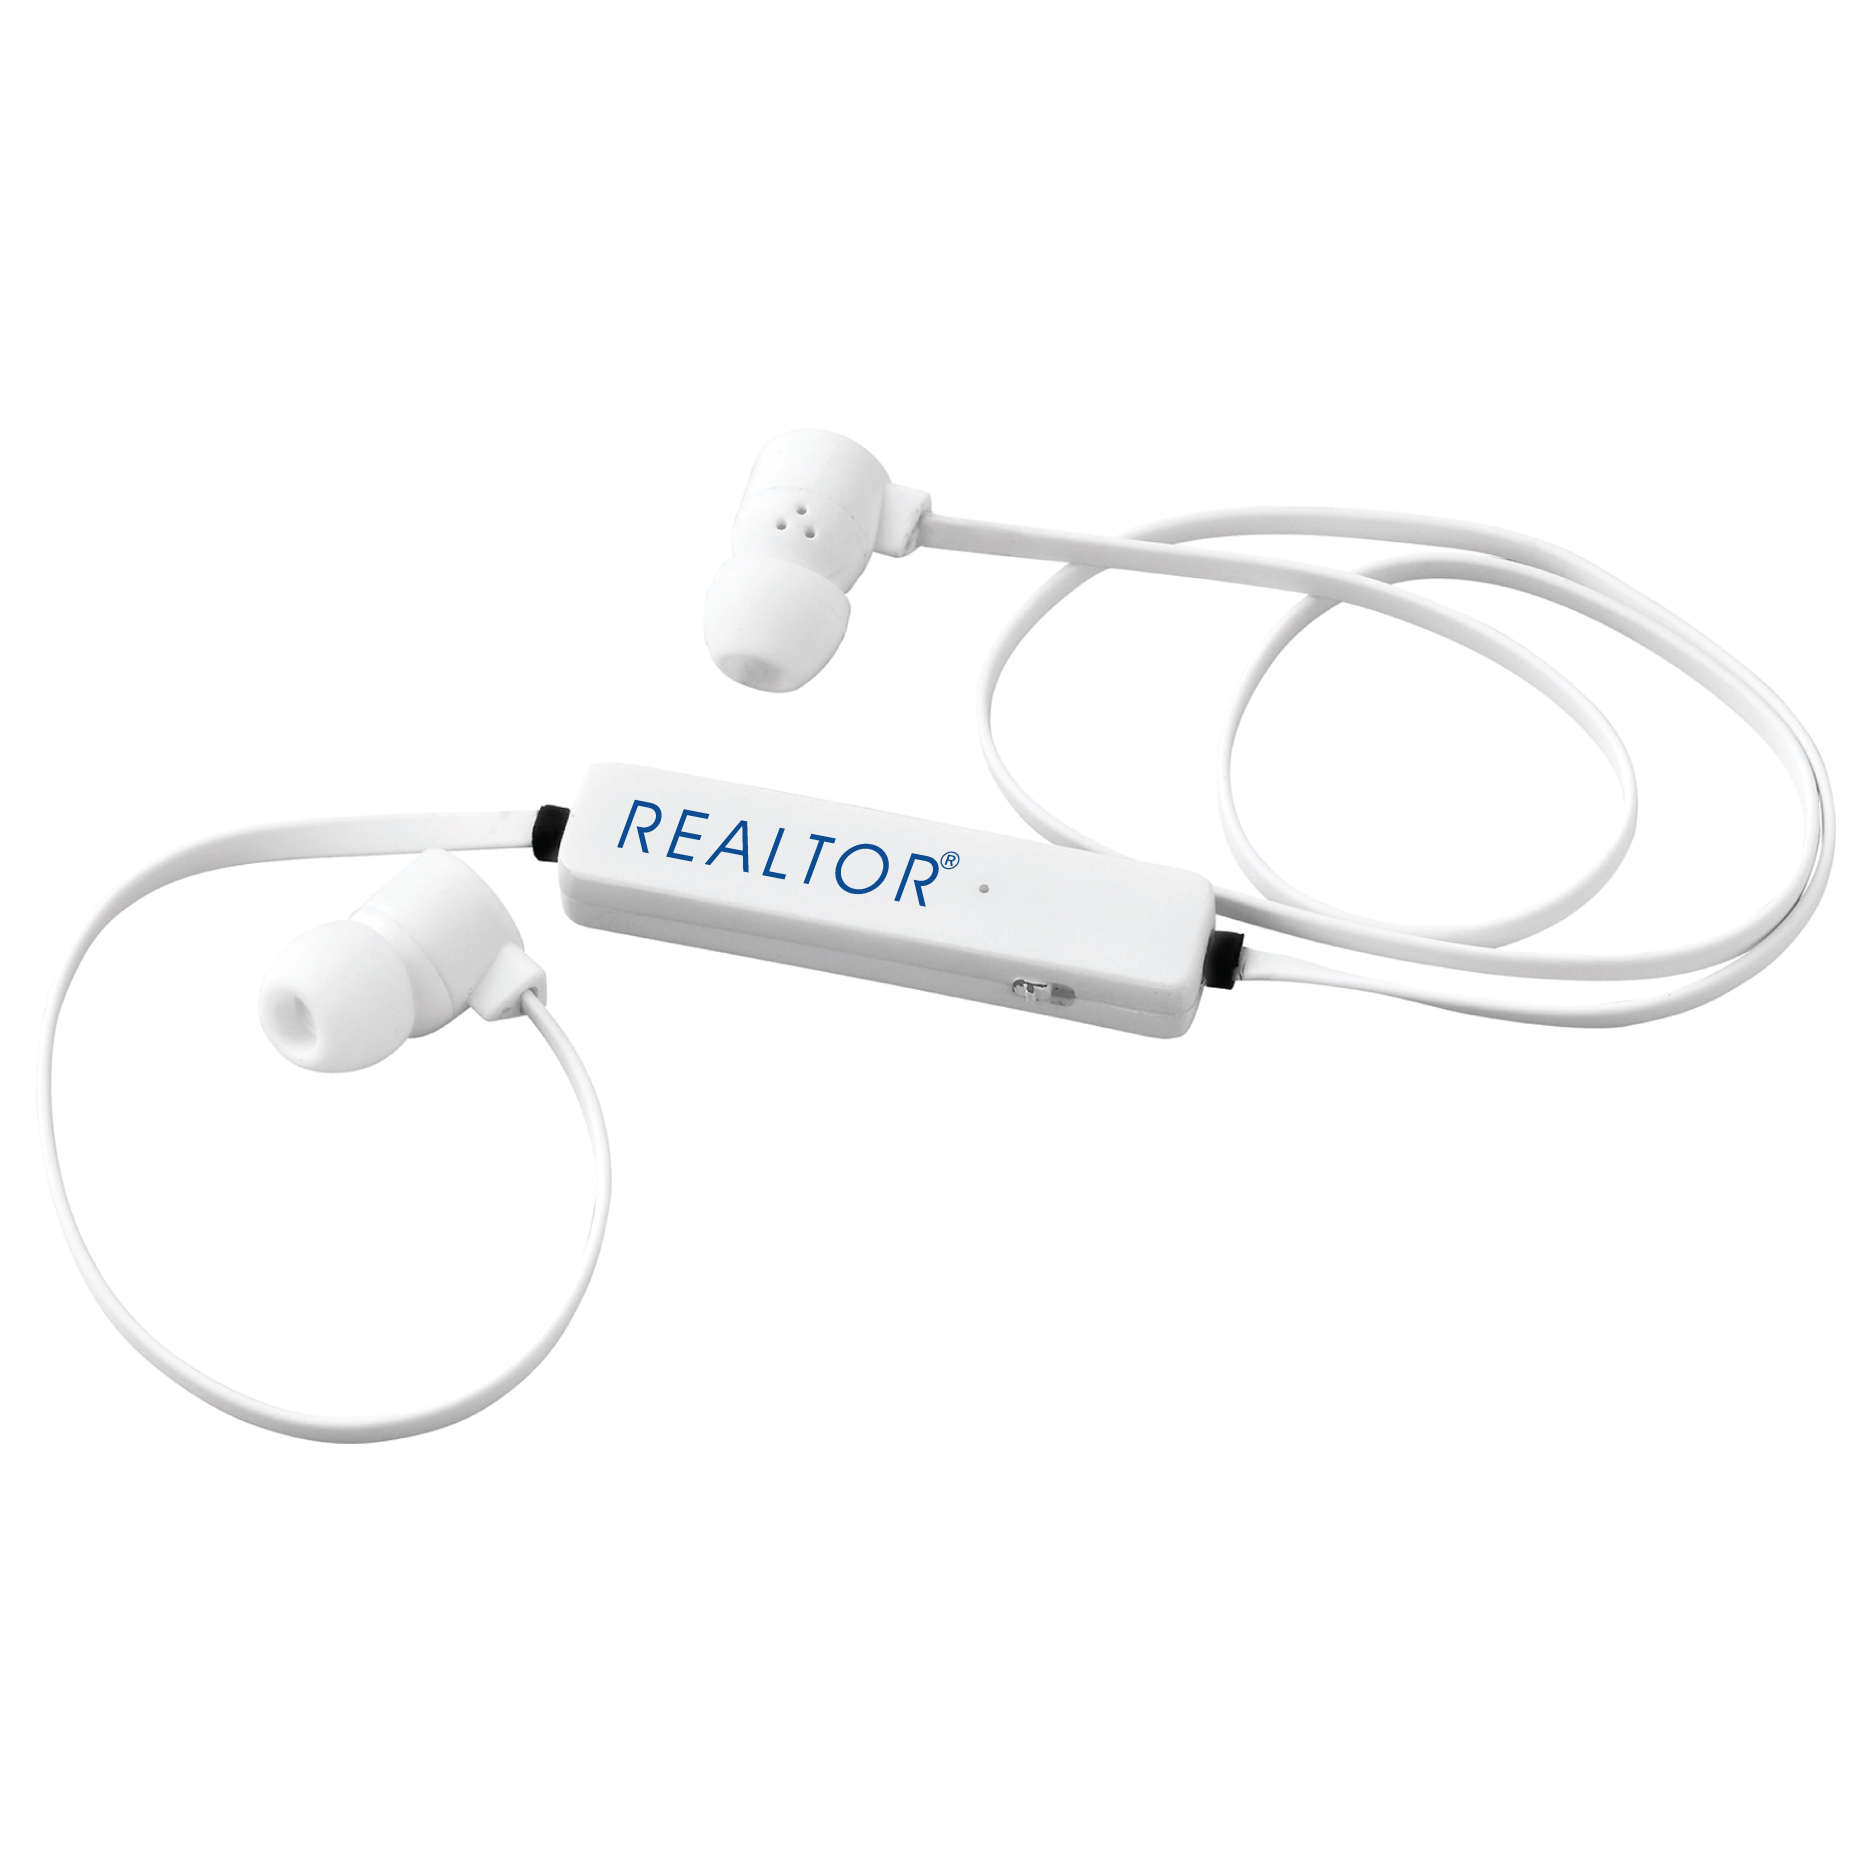 Bluetooth Earbuds Rts